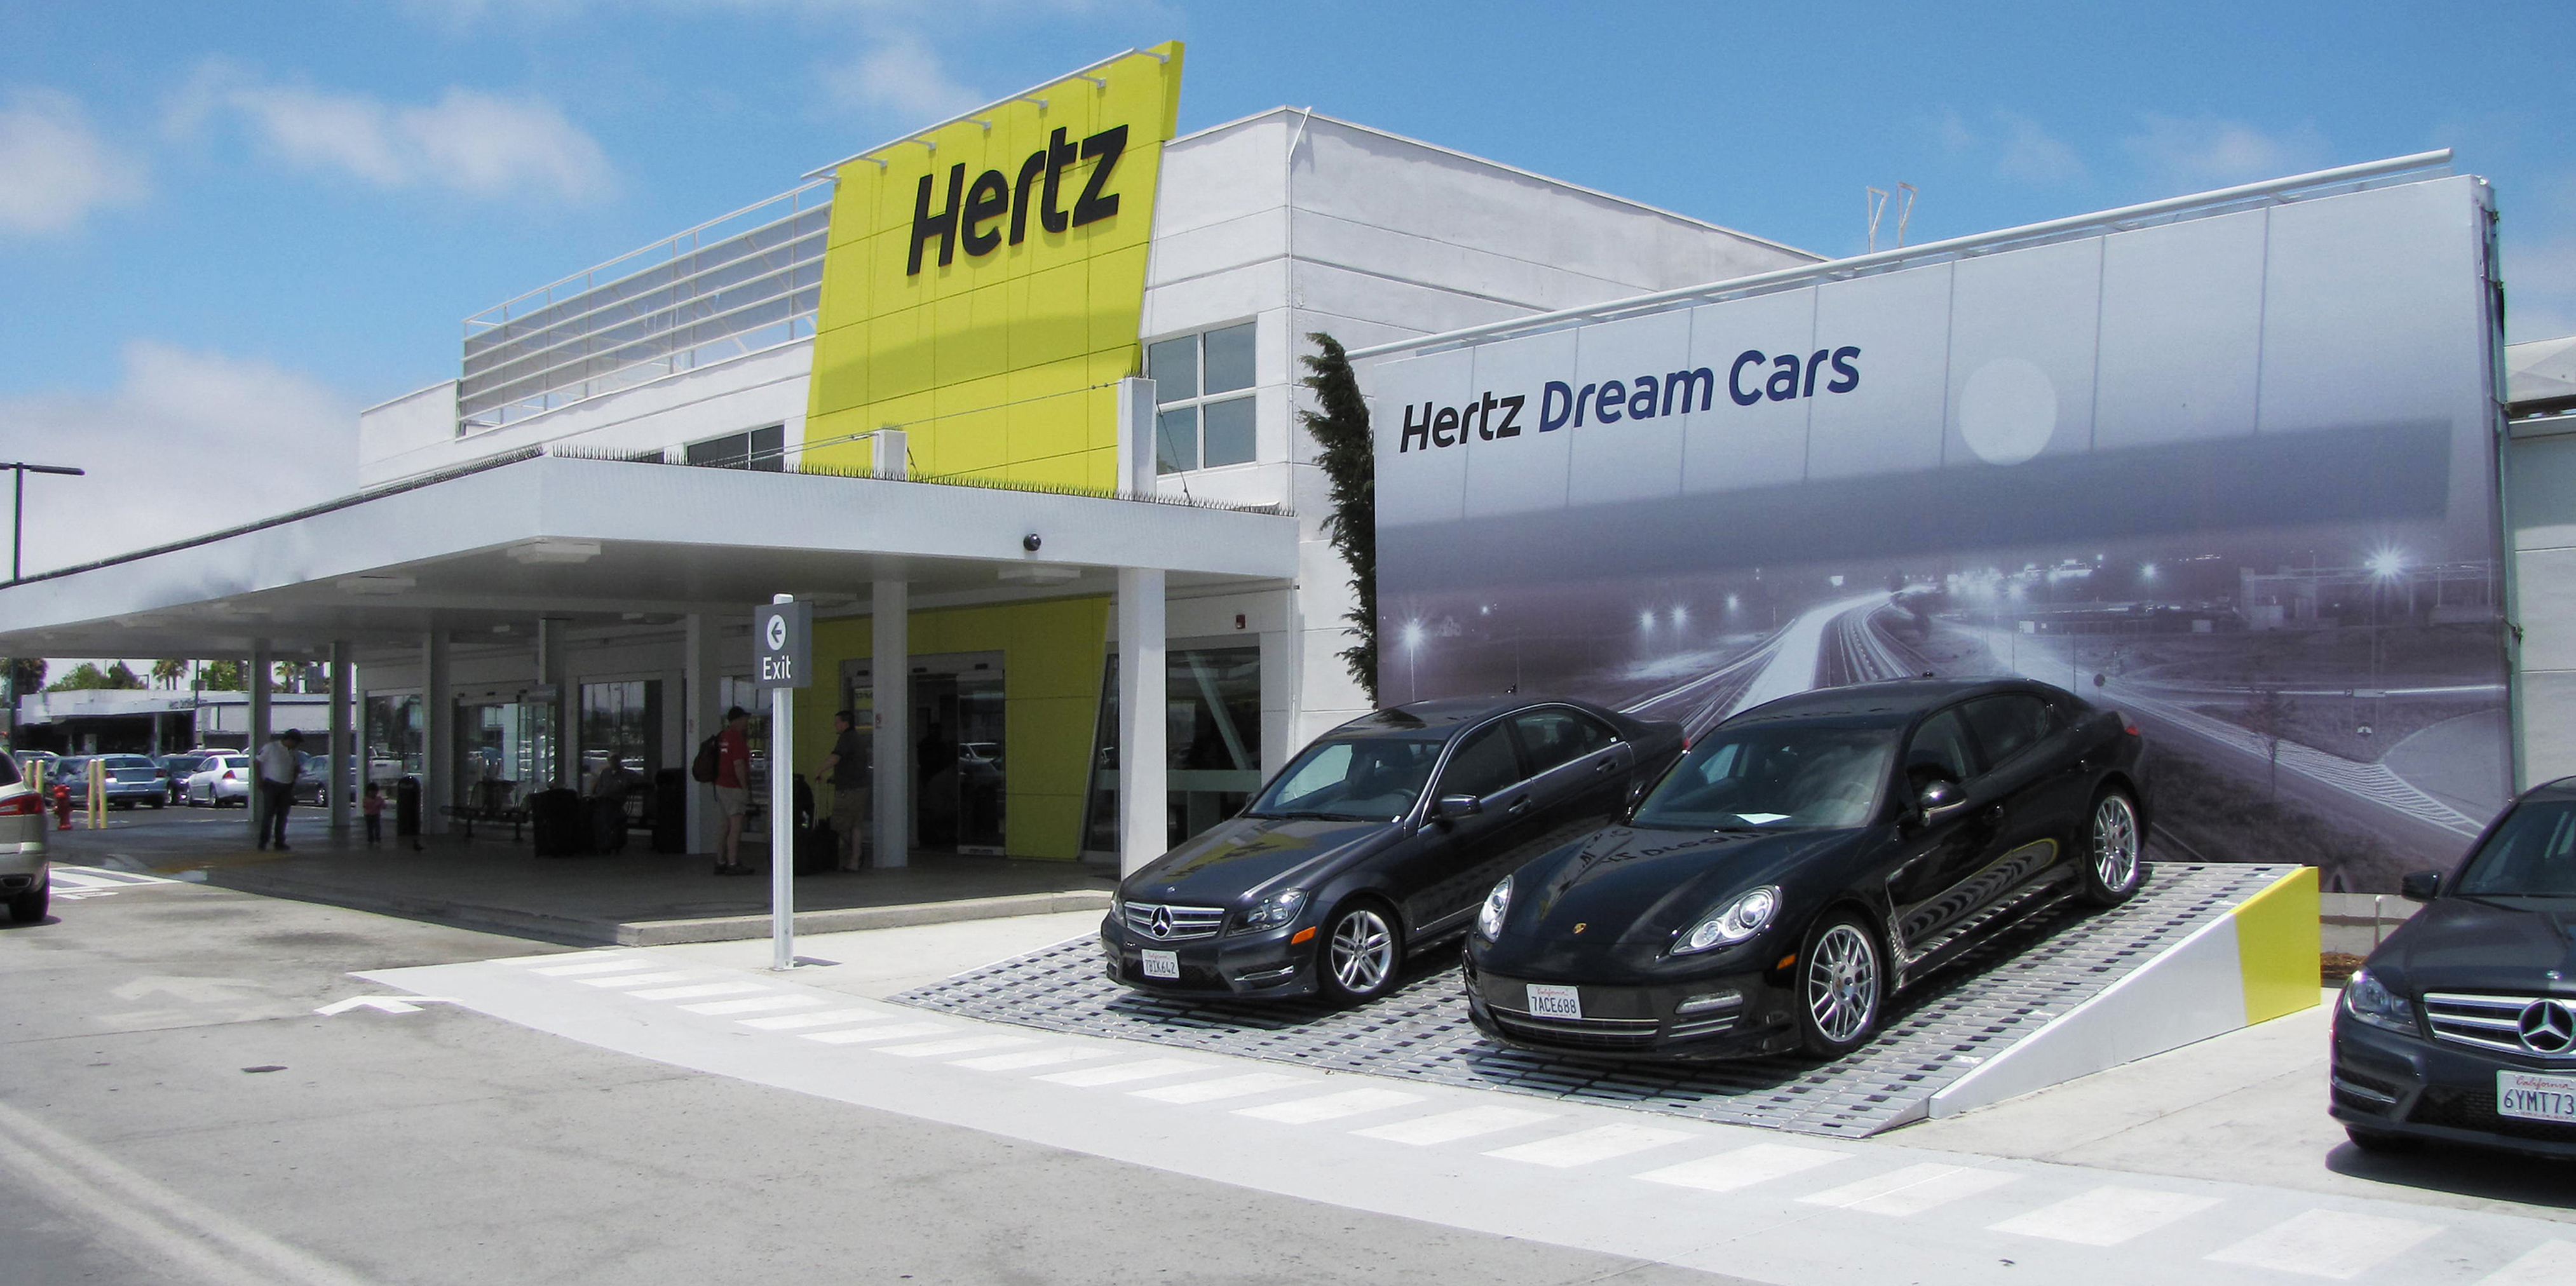 Hertz in LAS VEGAS, Nevada